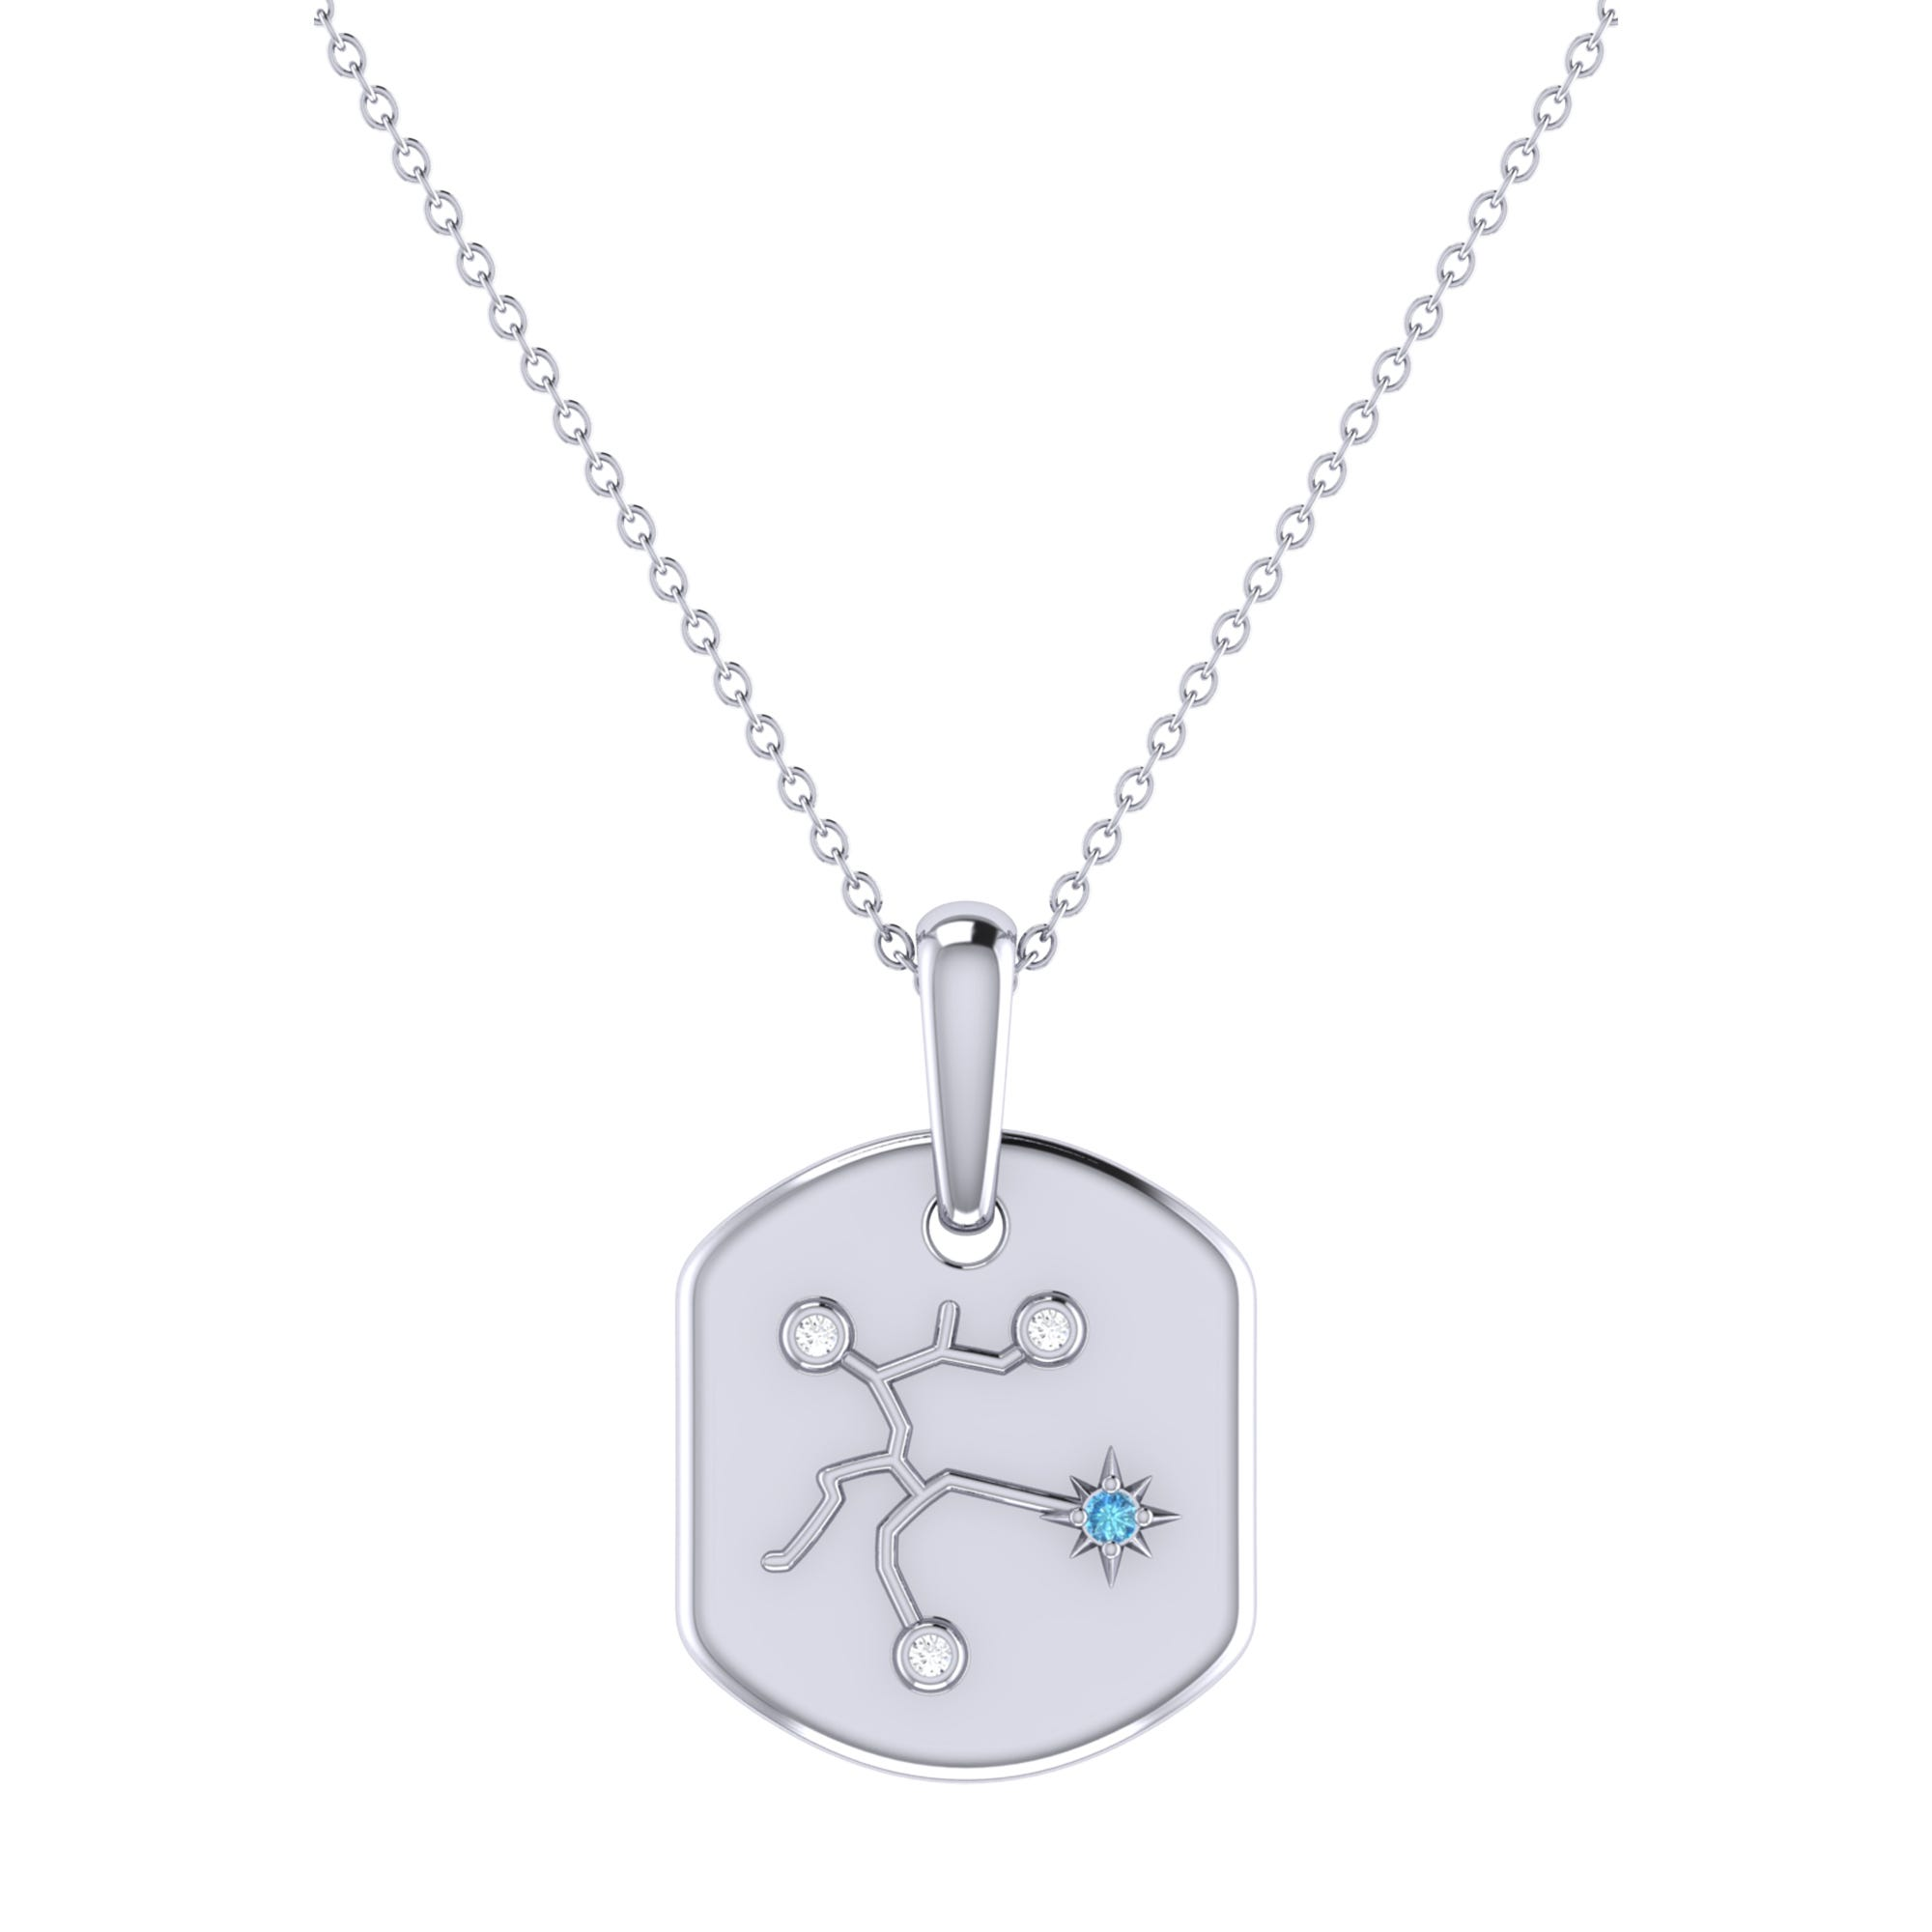 Diamond and Blue Topaz Sagittarius Constellation Tag Necklace in Sterling Silver